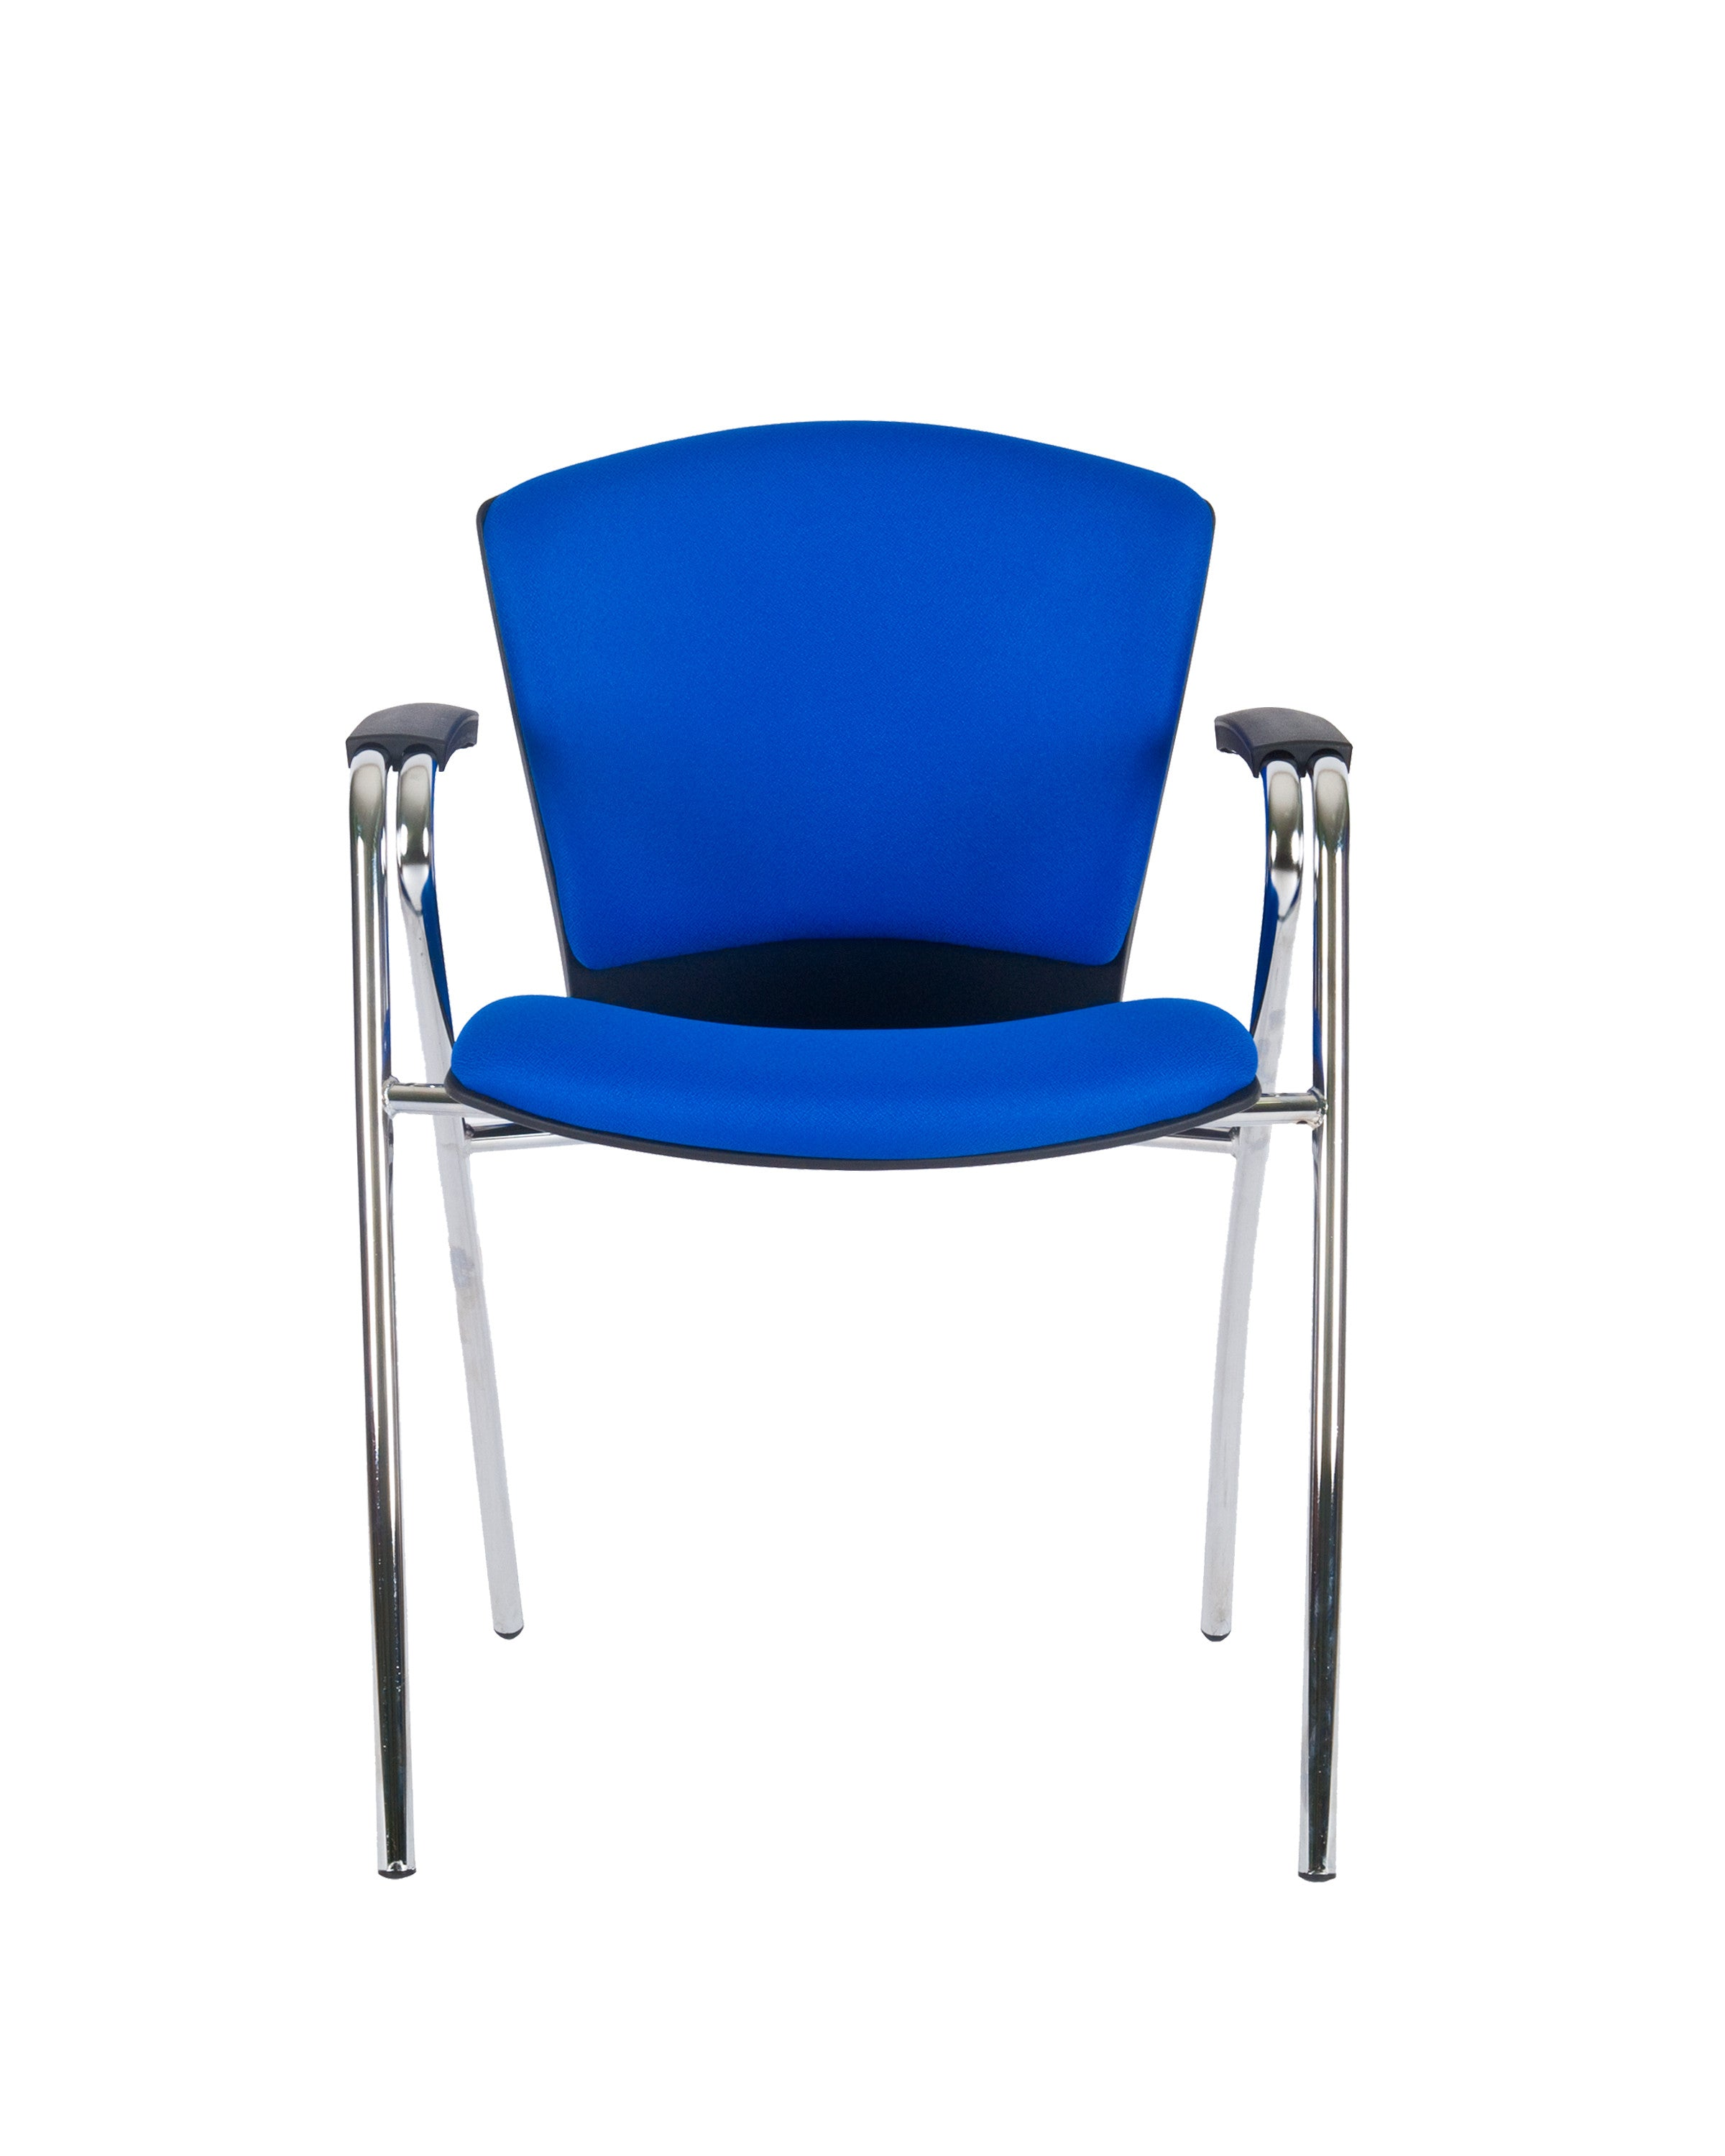 Modern Fabric Upholstered Stacking Guest Chair with Arms by Charm Furniture (Blue)